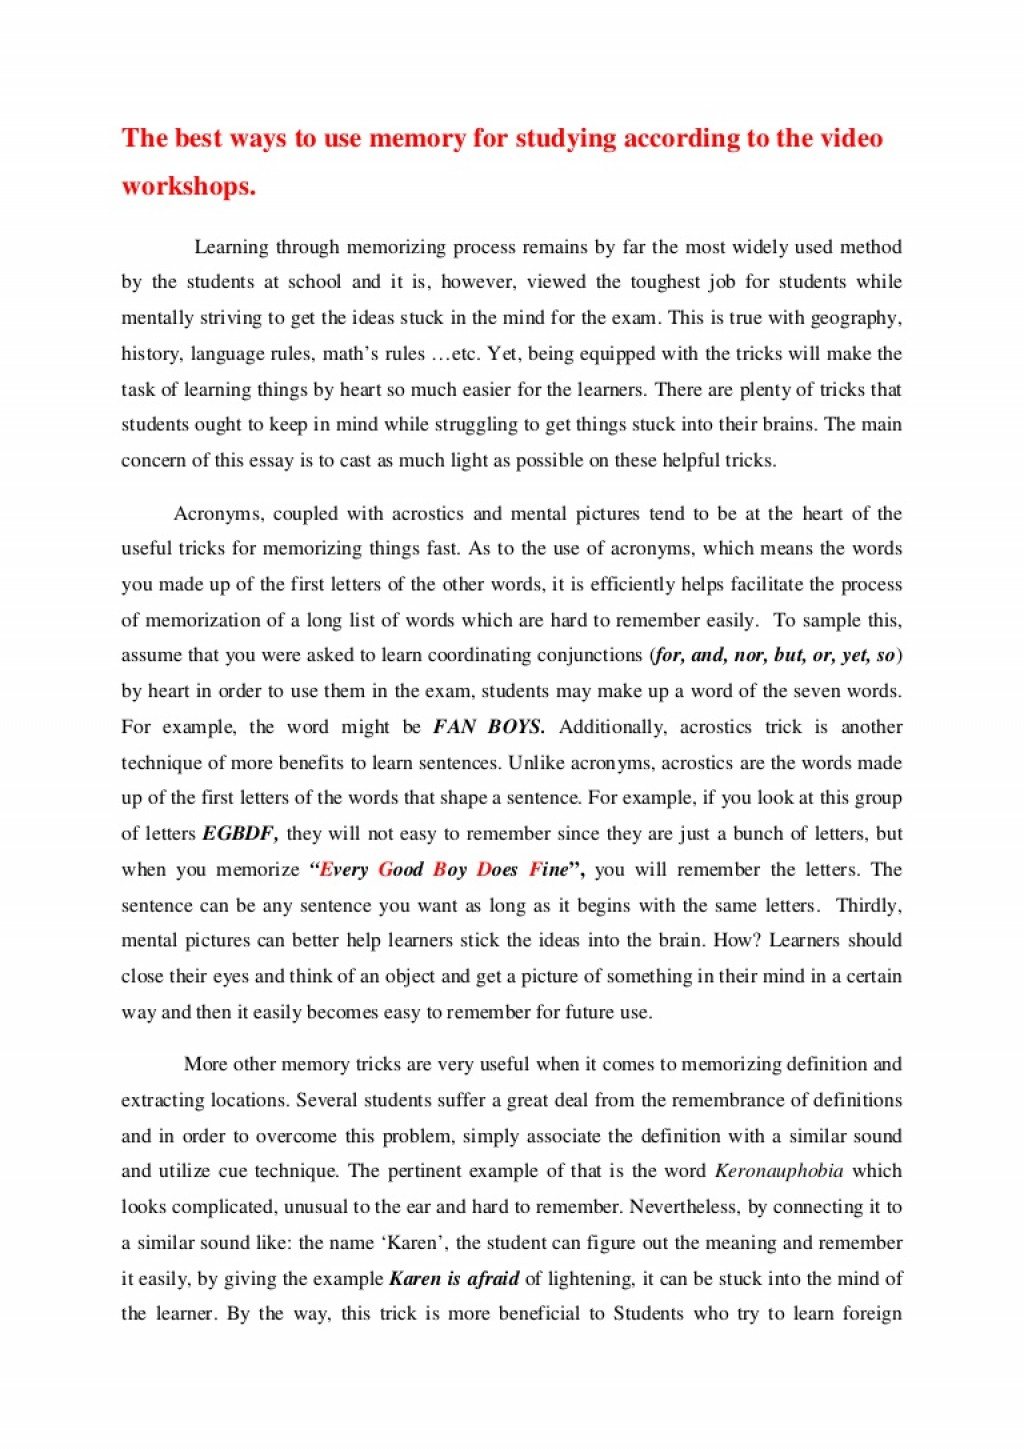 009 Anessayonmemorytricks Phpapp02 Thumbnail Research Paper Chronological Order Of Awesome A Large